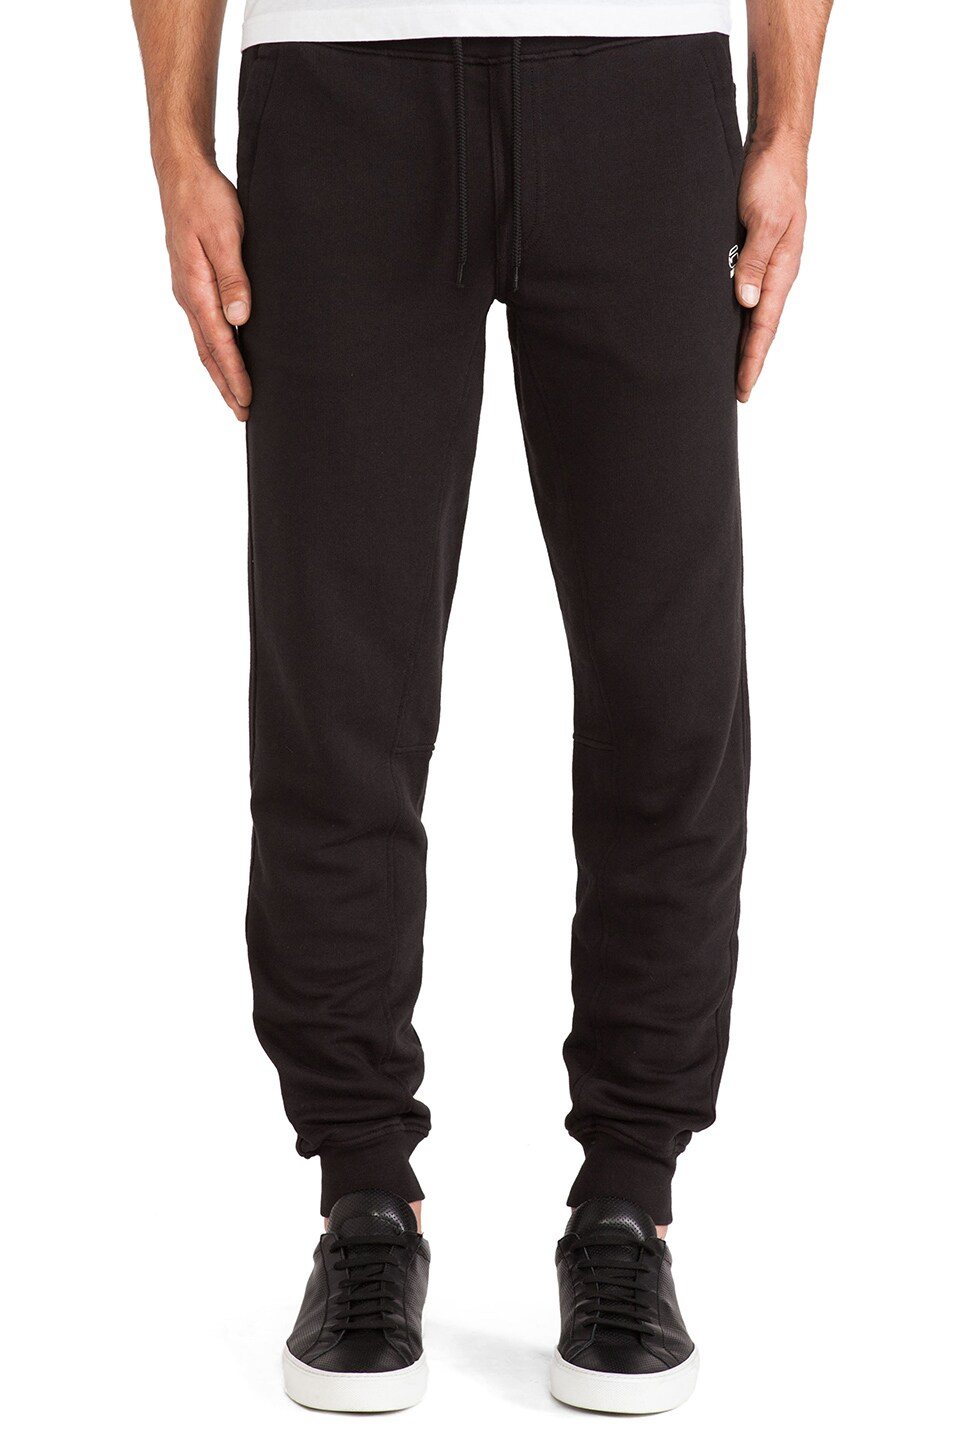 G-Star Wearlent Tapered Sweatpant in Black